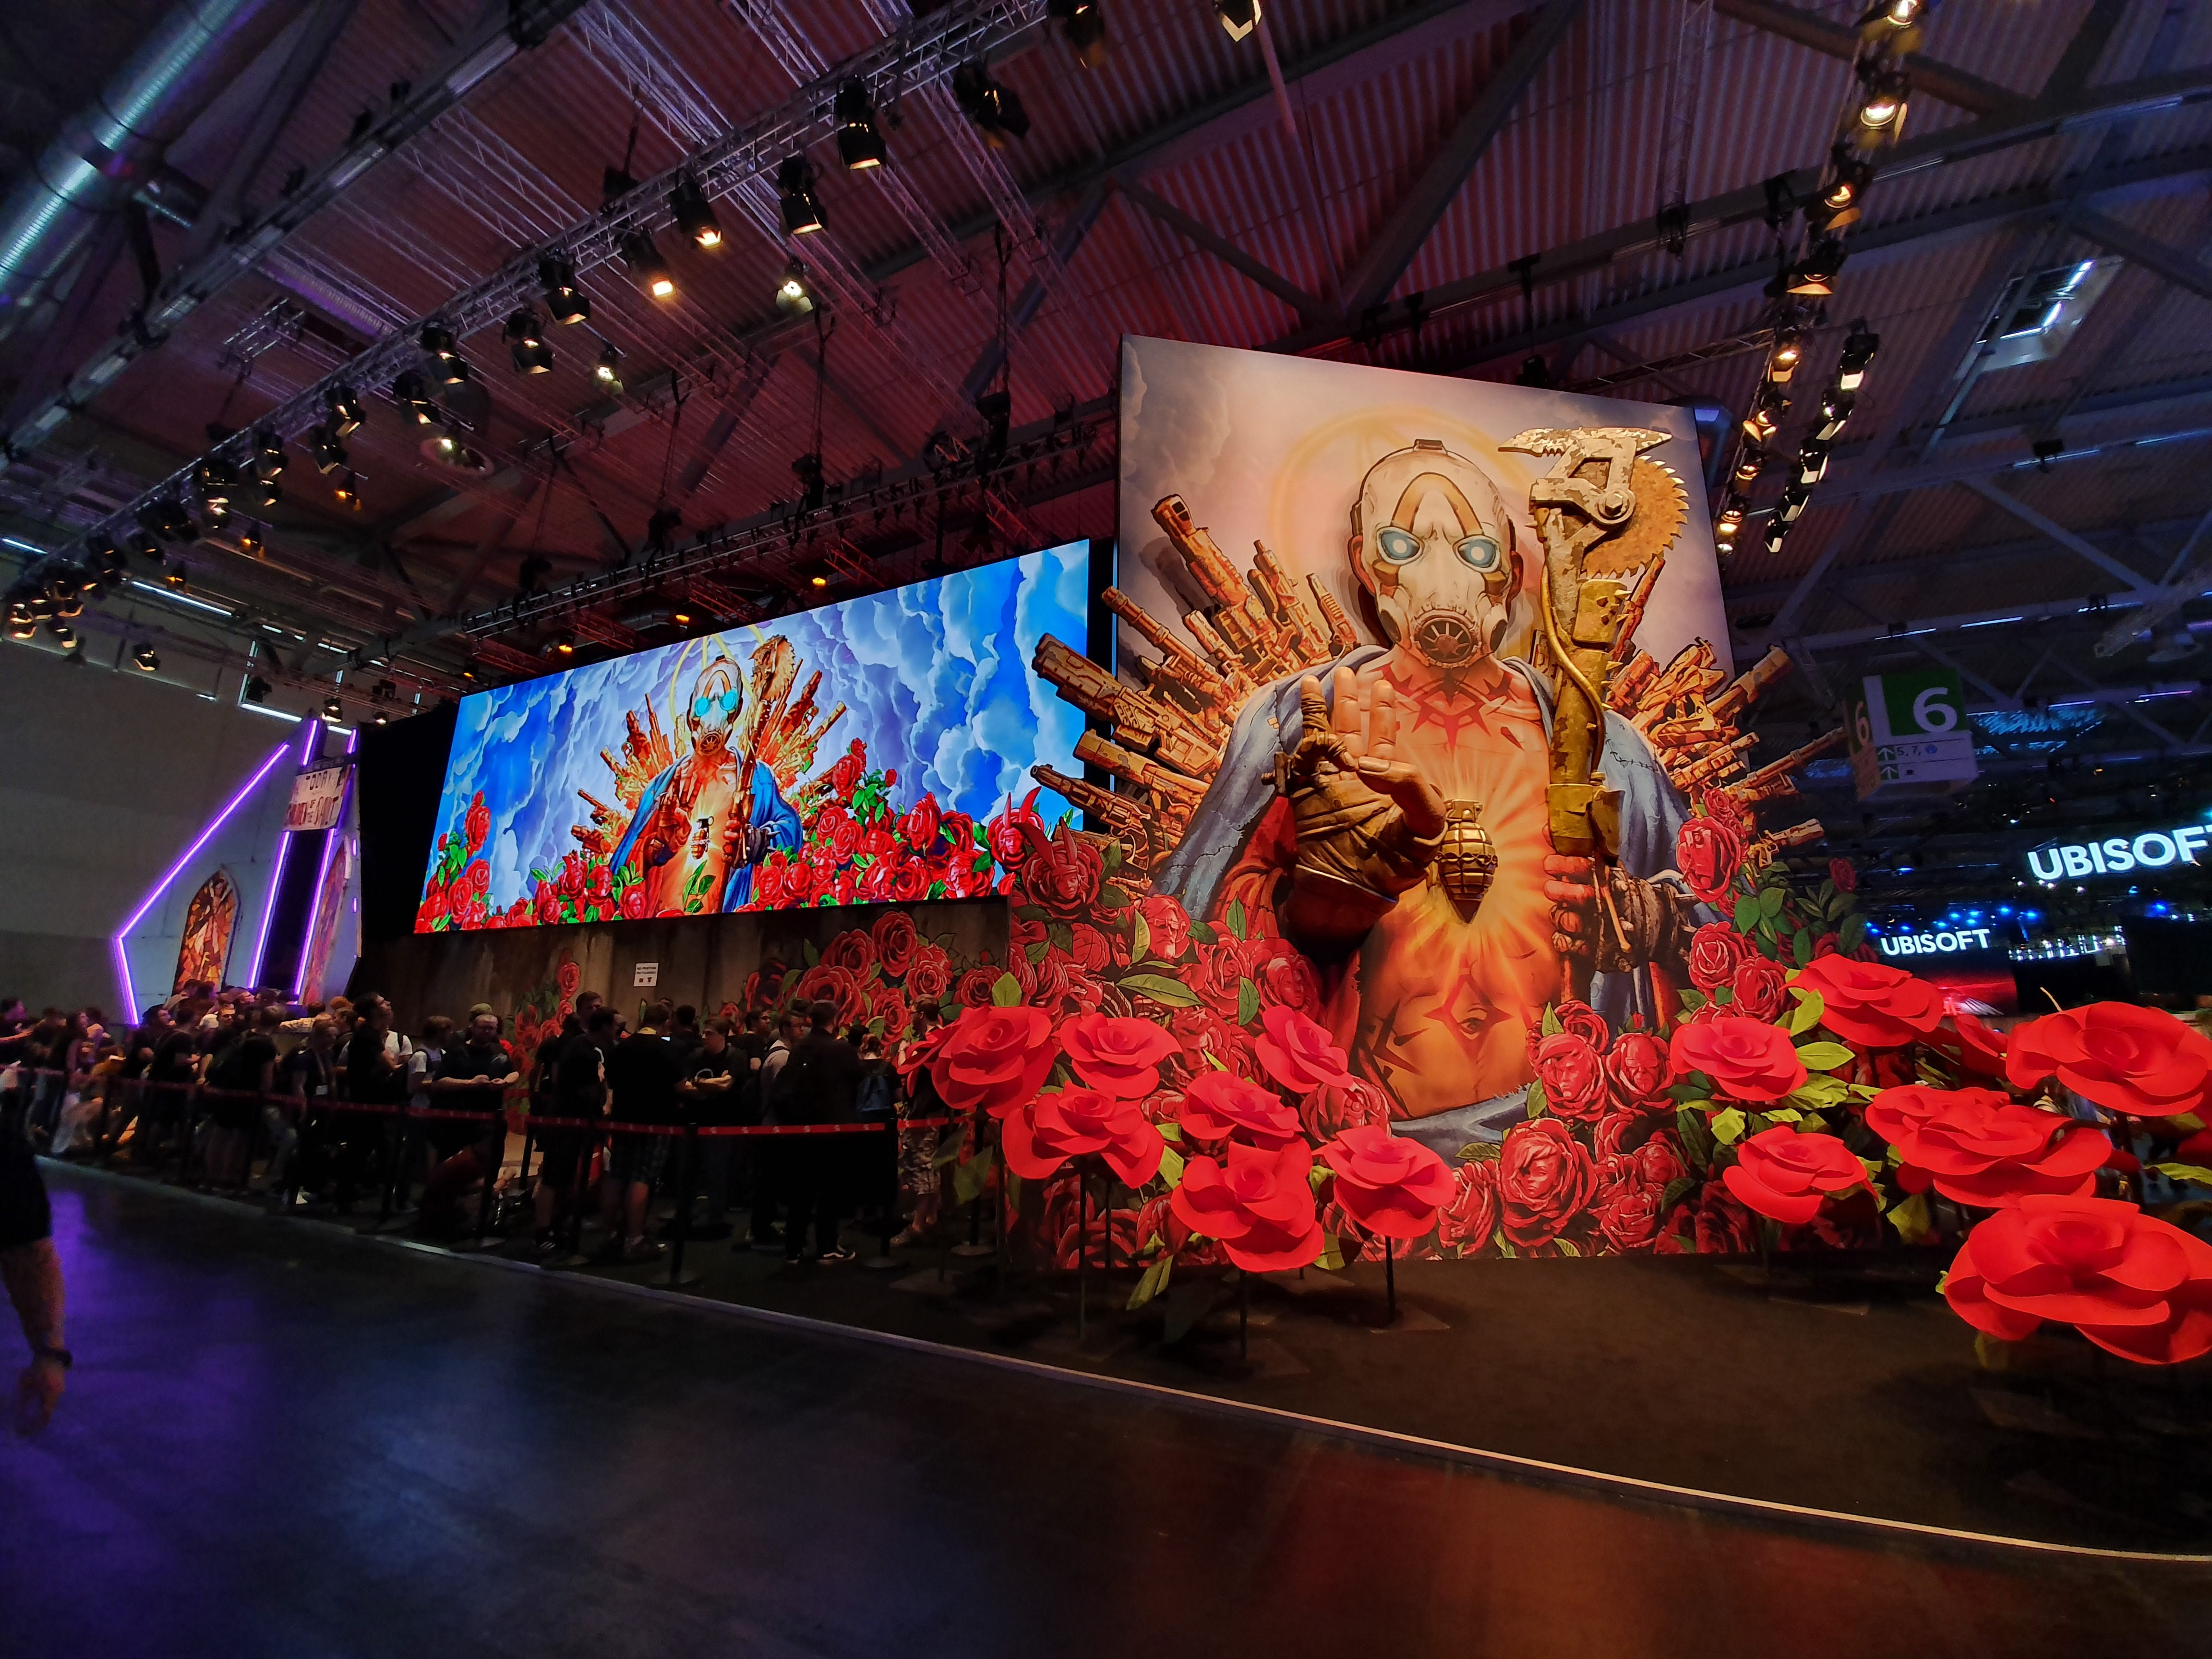 Alrec dives into the gaming community experiencing what the worlds largest gaming event – Gamescom has to offer in 2019 and beyond.